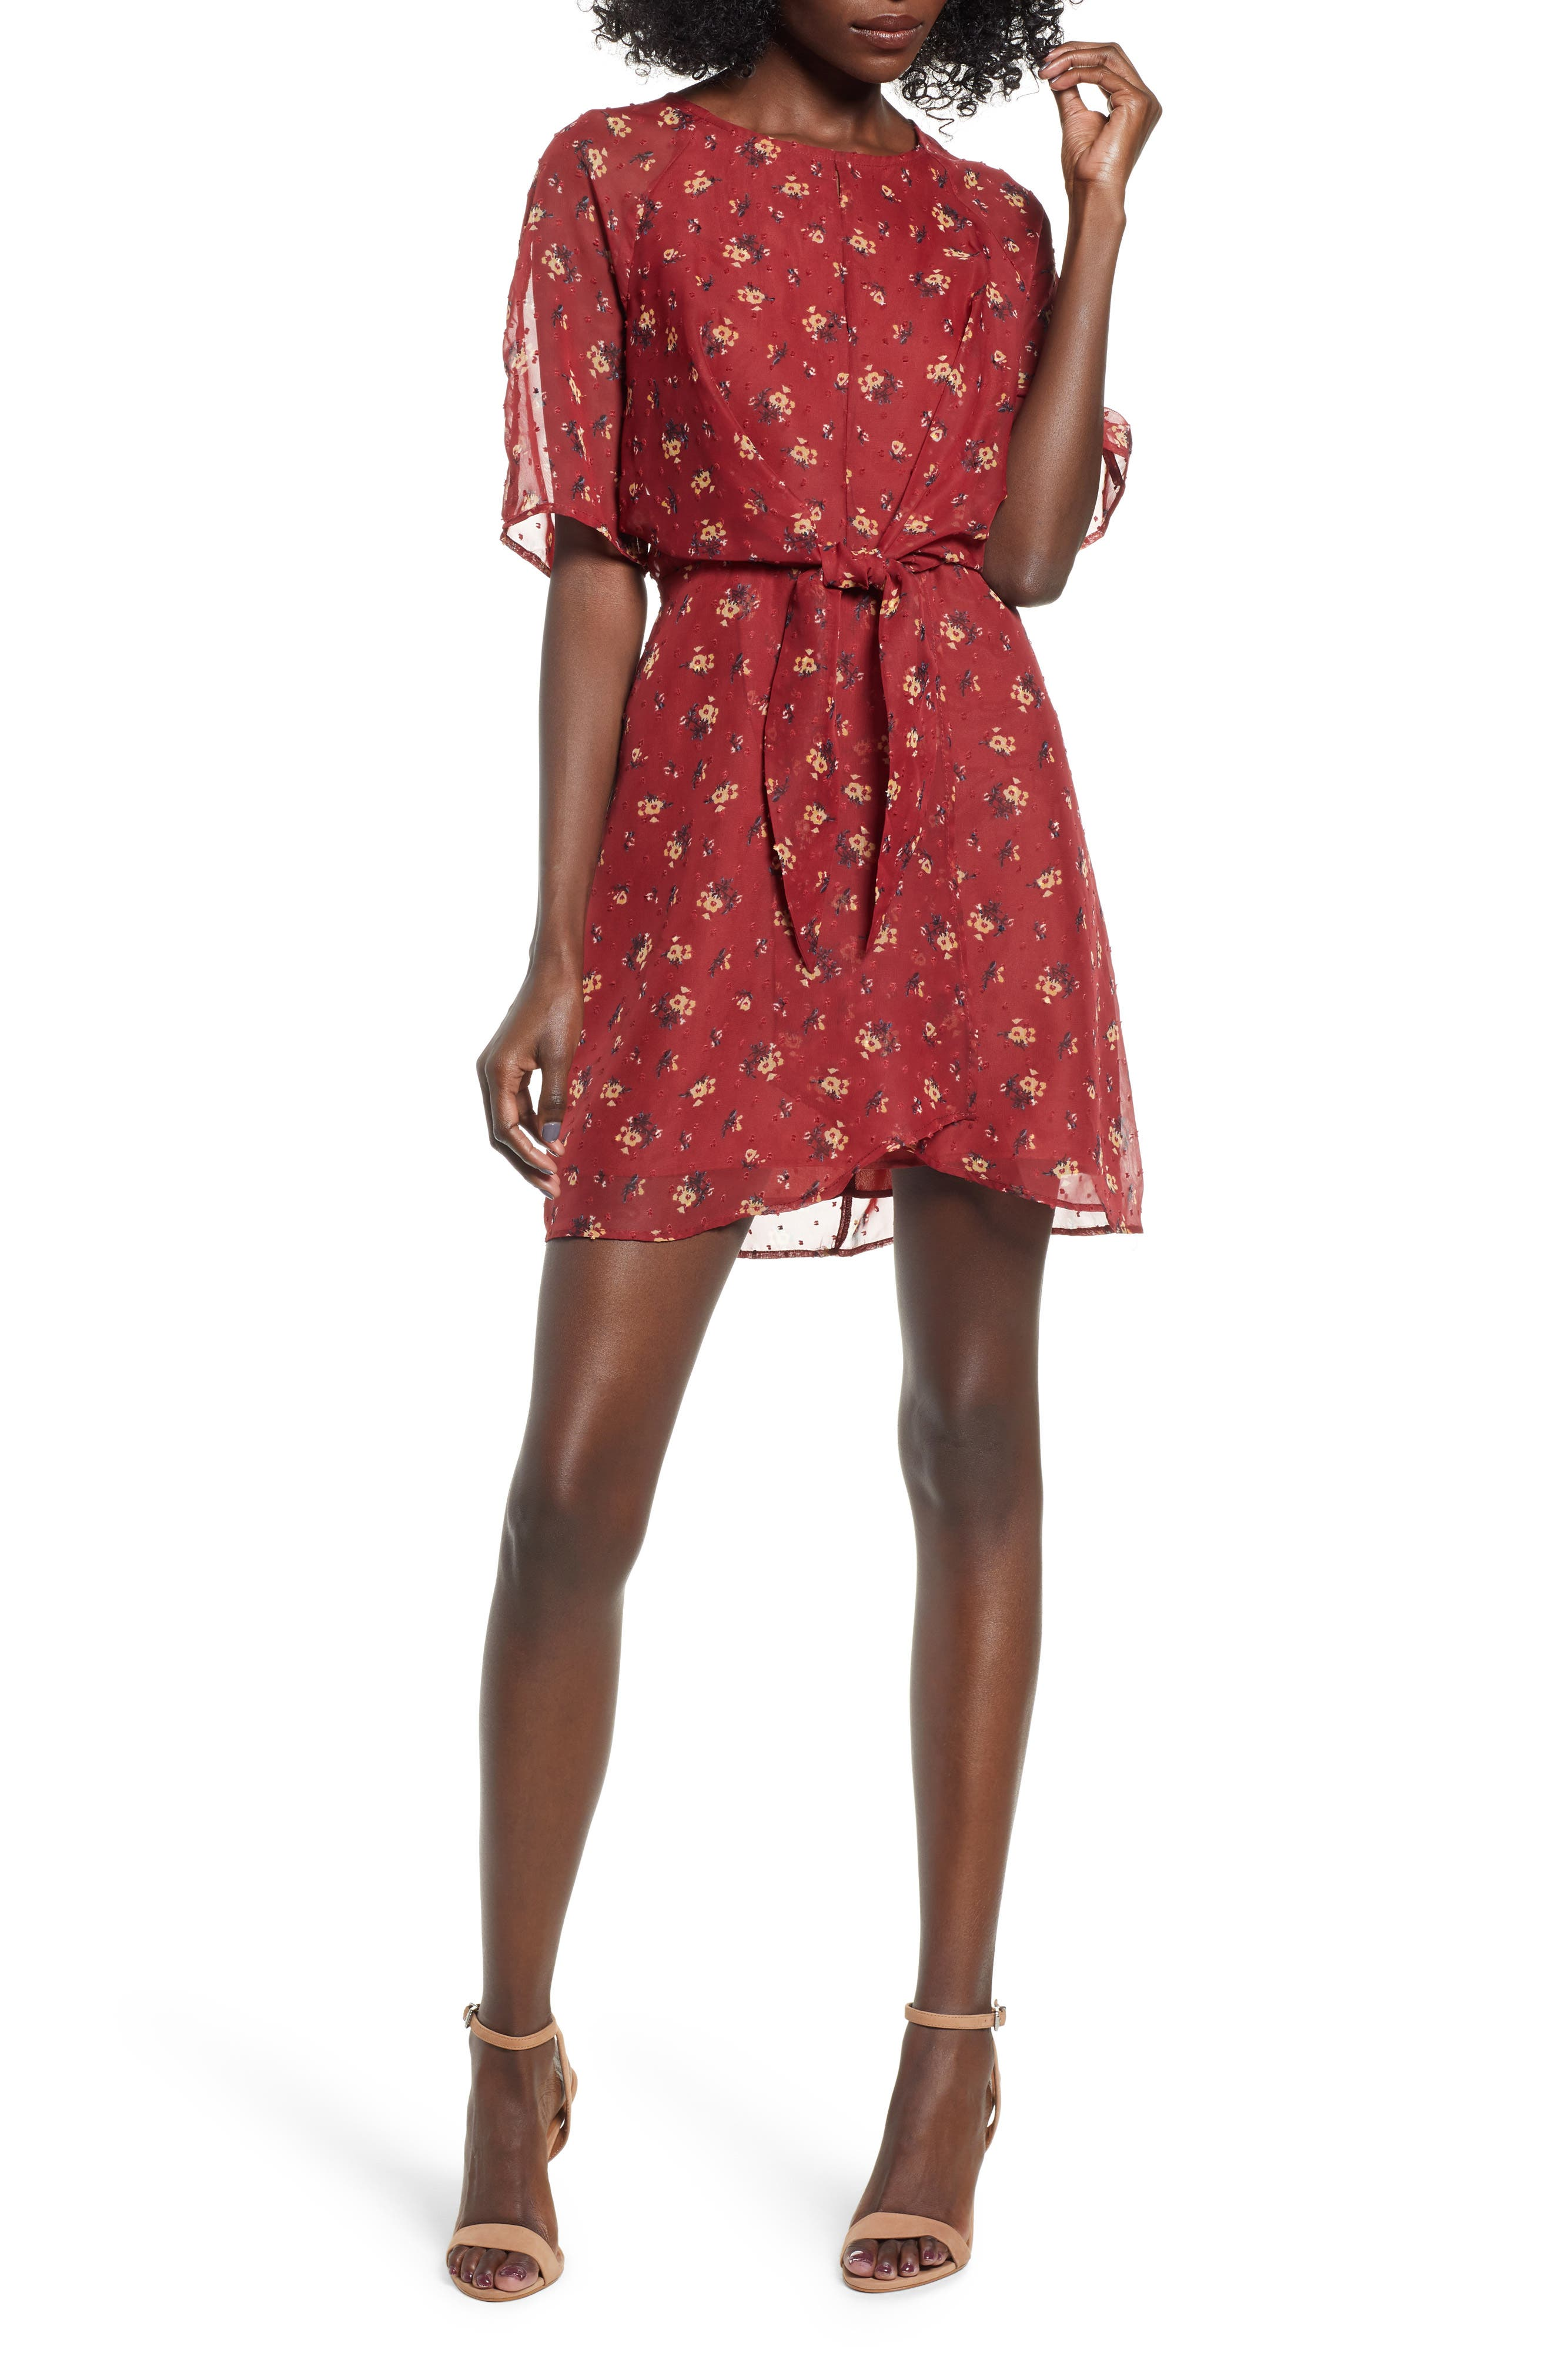 LOVE, FIRE Floral Print Dress in Brick